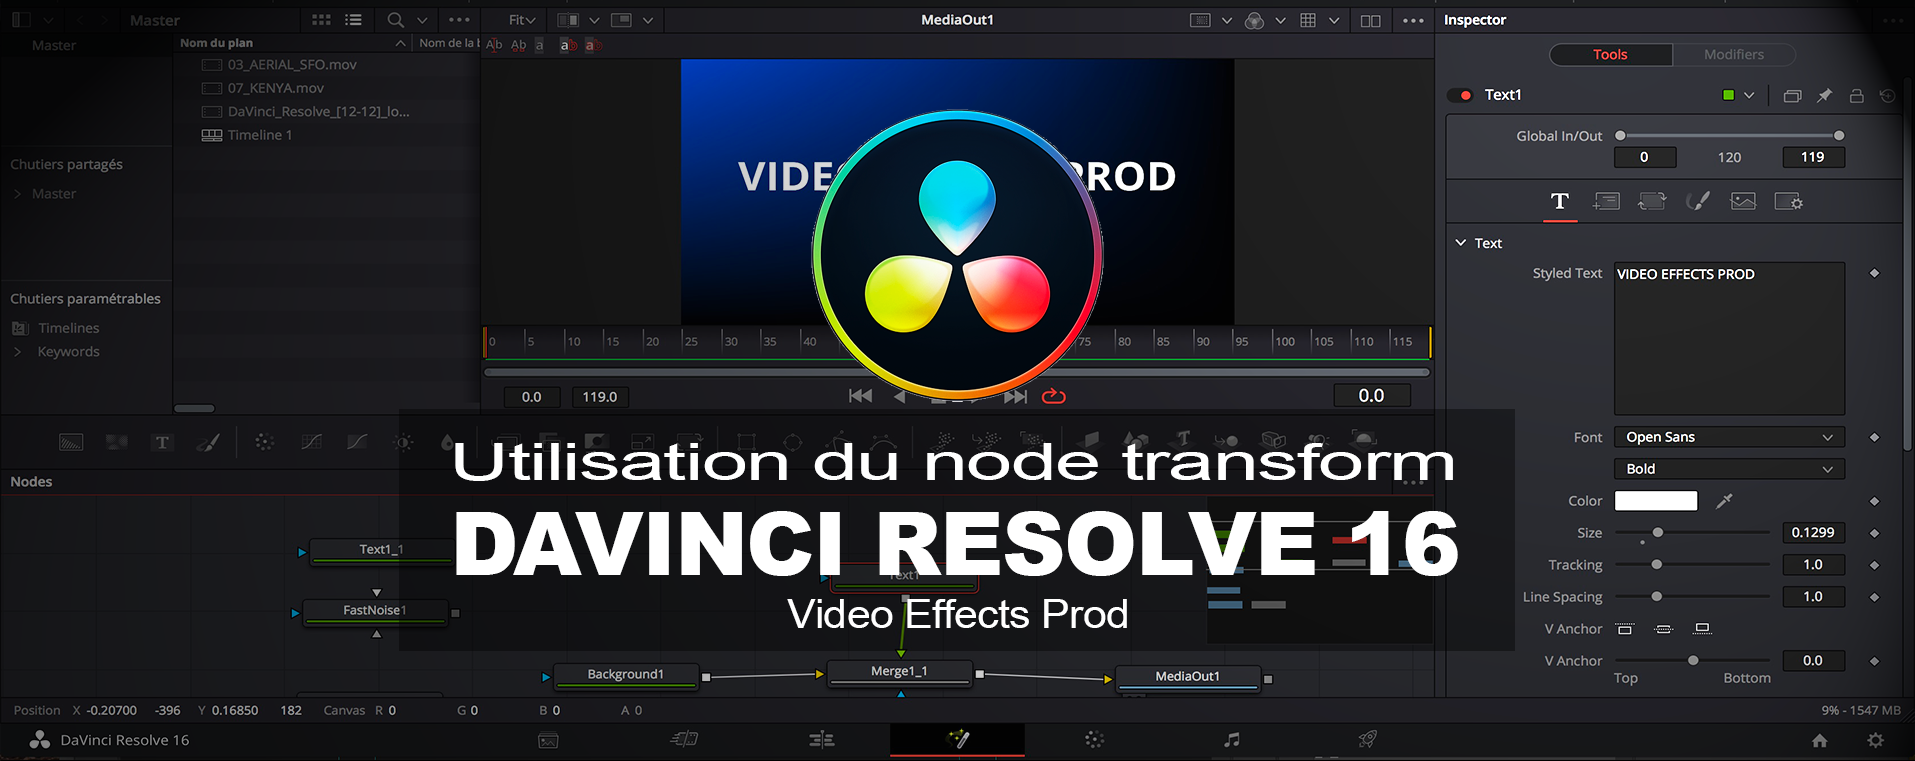 DavInci Resolve : Utilisation du node Transform dans la Page Fusion